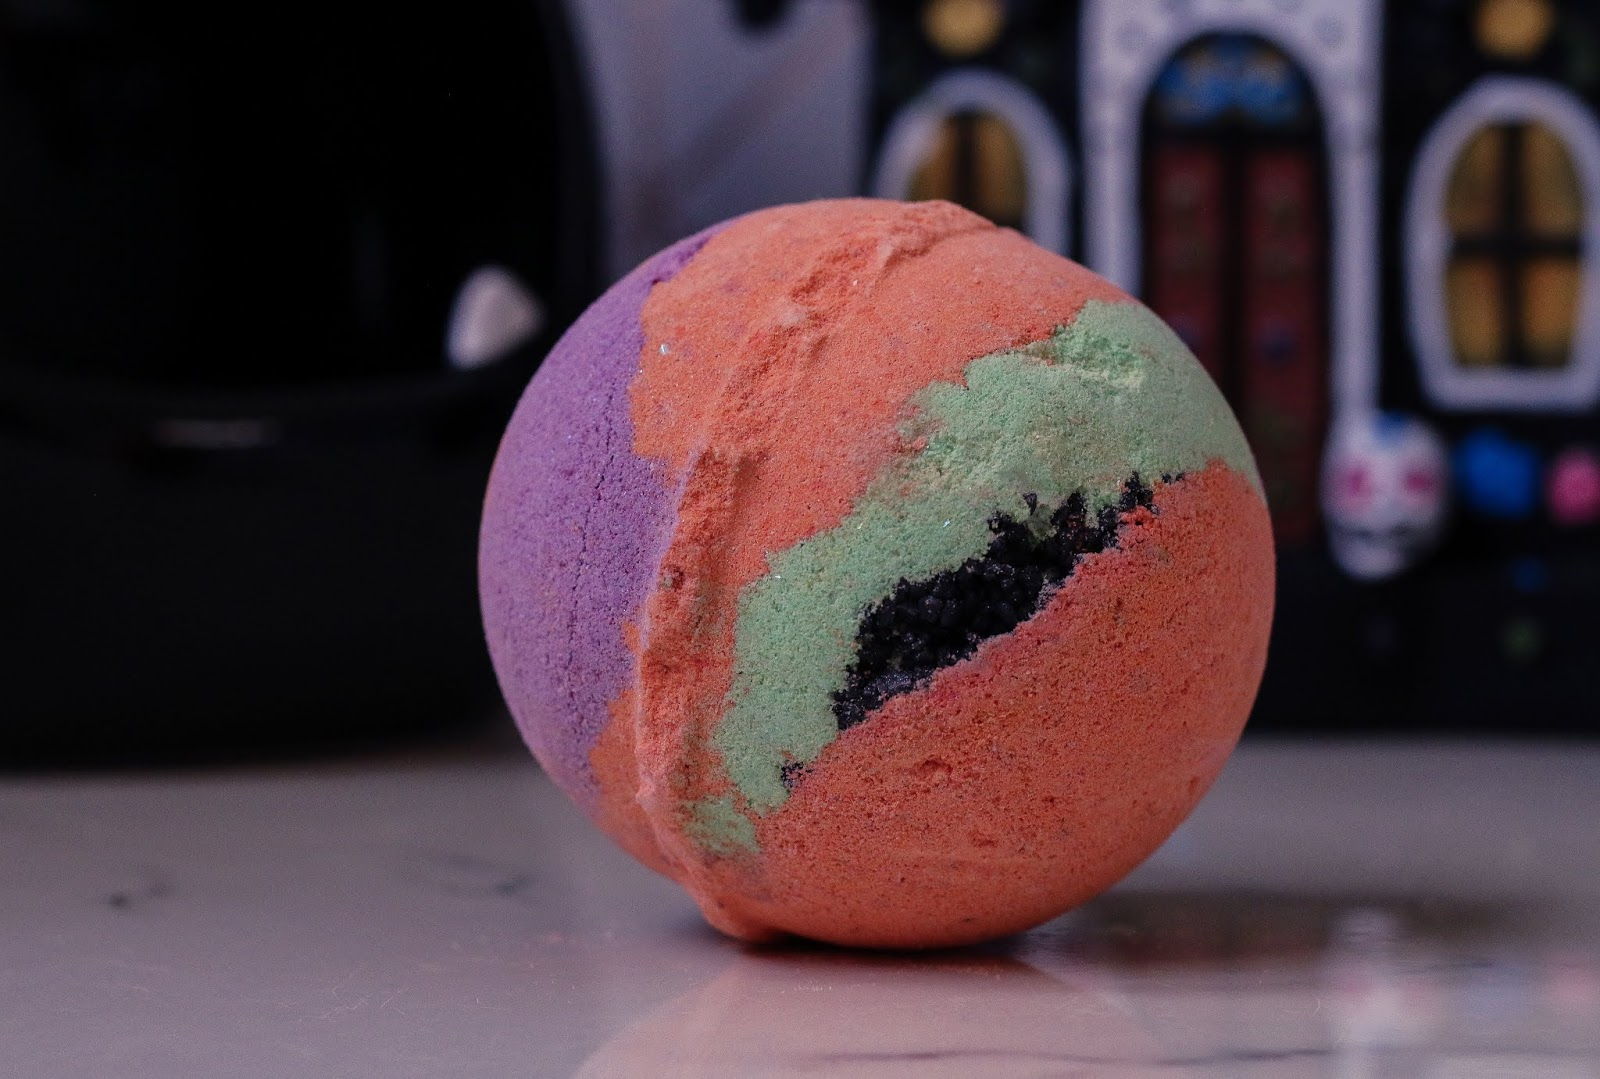 Close up photo of the Mercury Retrograde Bath bomb from lush. A round orange bath bomb with green, purple and black coarse sea salt through it. Bath bomb sitting on white marble bed side table with a Haunted house Halloween decoration in the background.